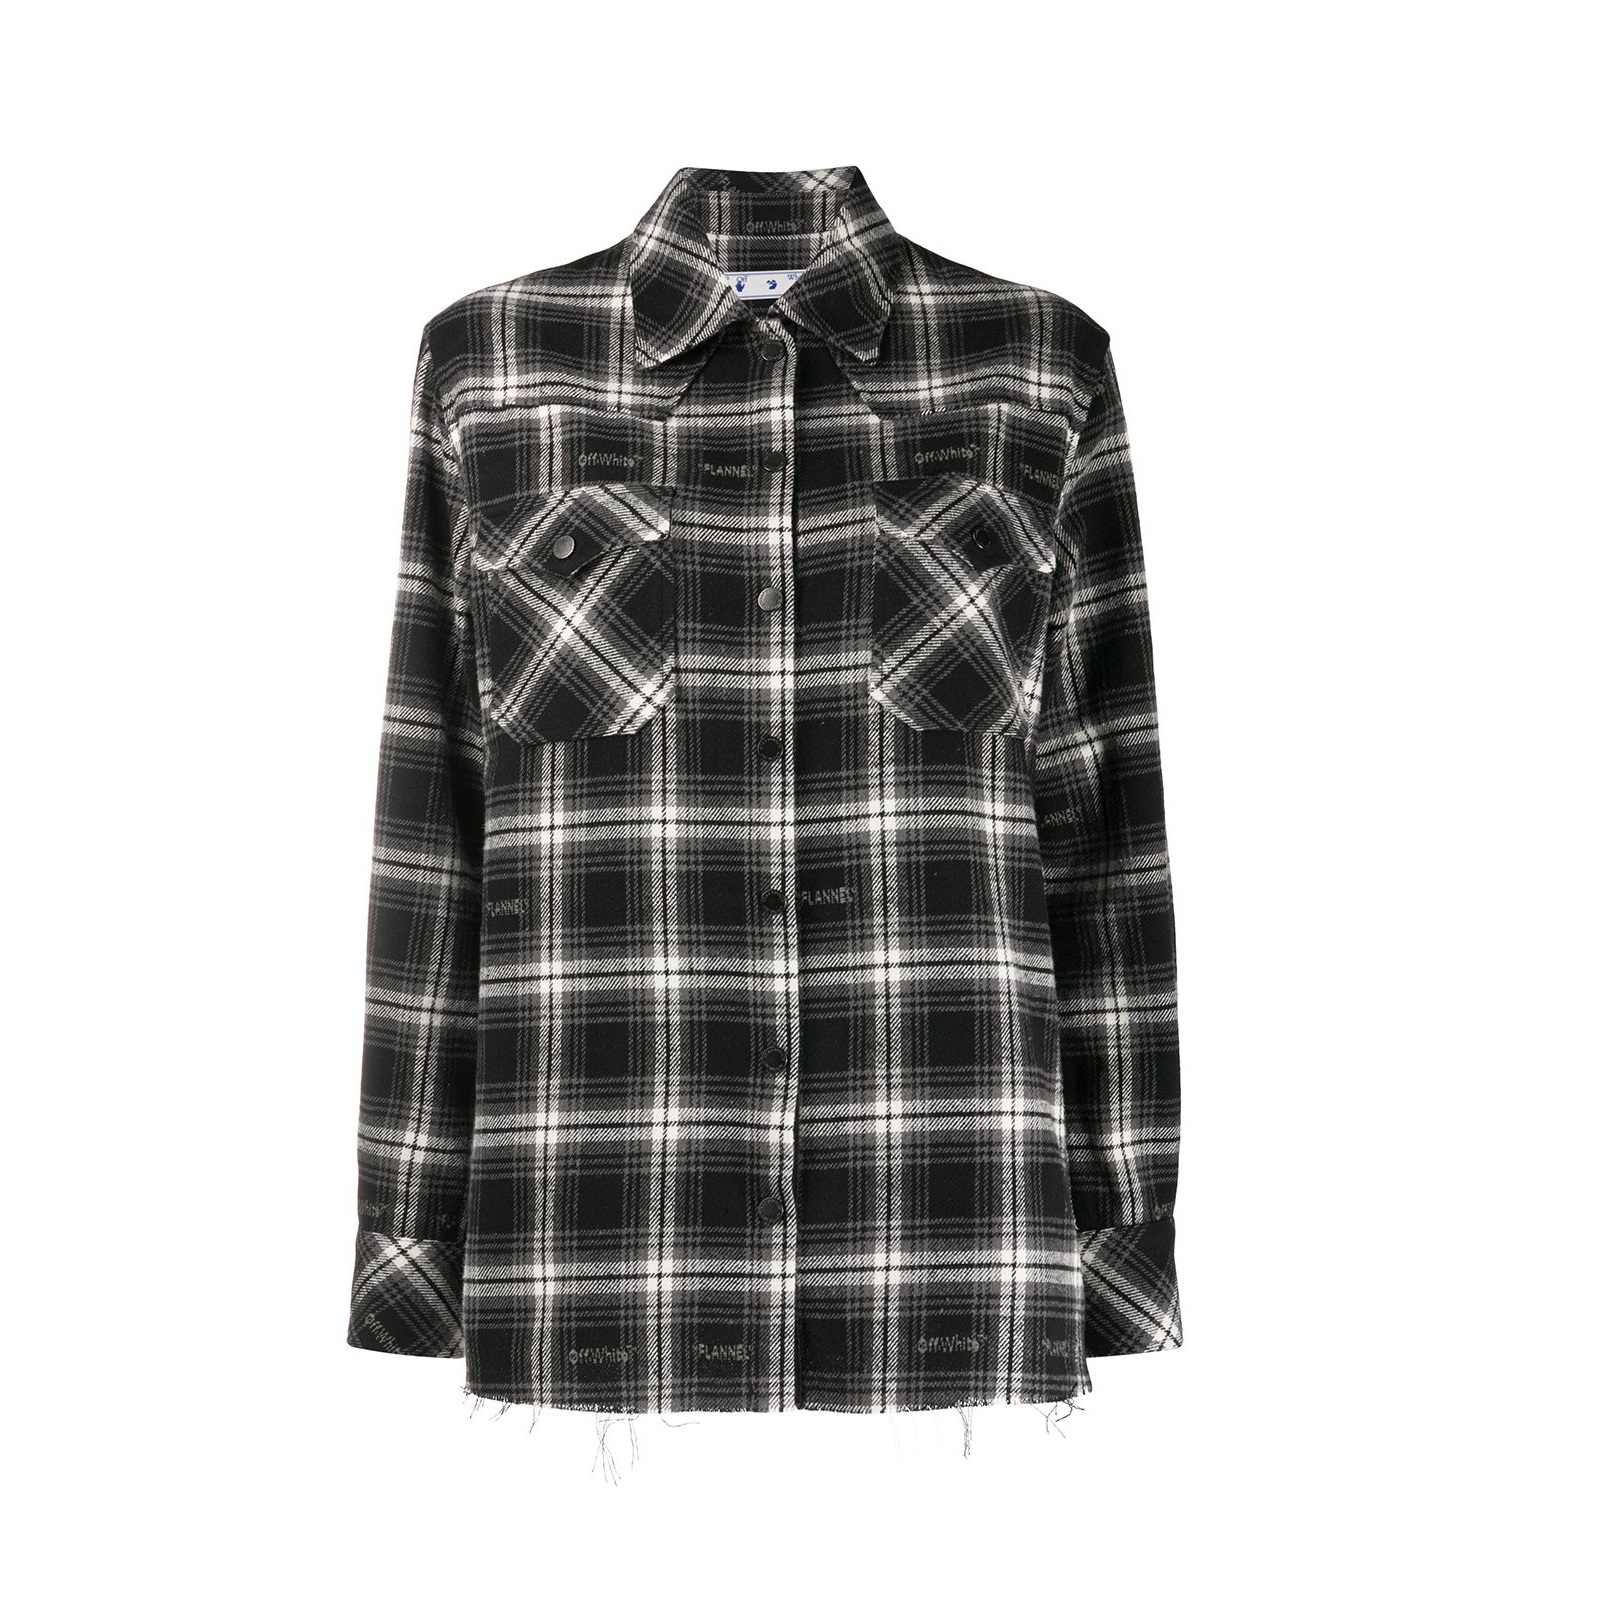 FARFETCH: 35% OFF New Season Off-White Checked Boxy Shirt